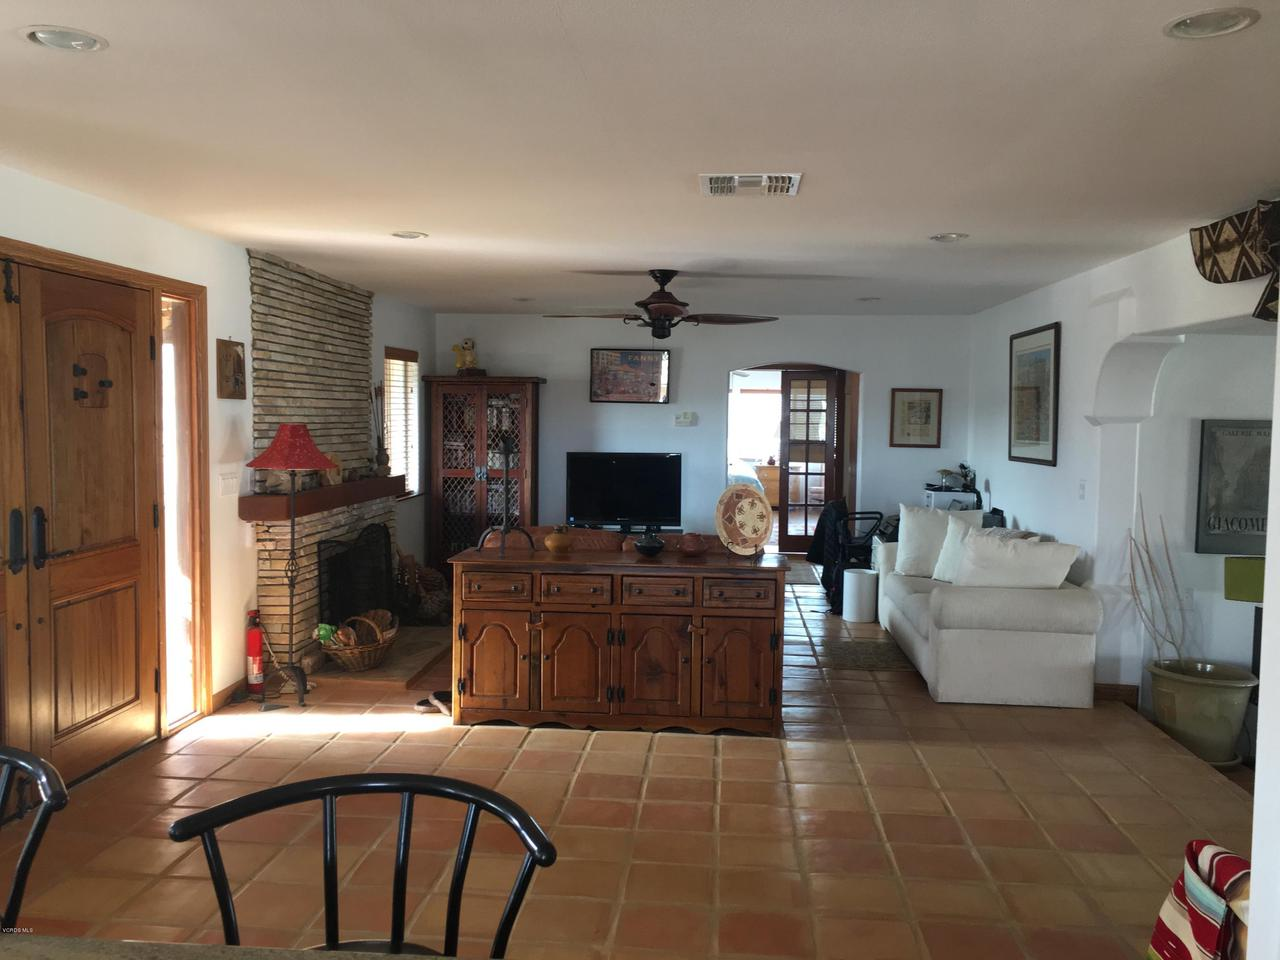 74784 FOOTHILL, 29 Palms, CA 92277 - Entry